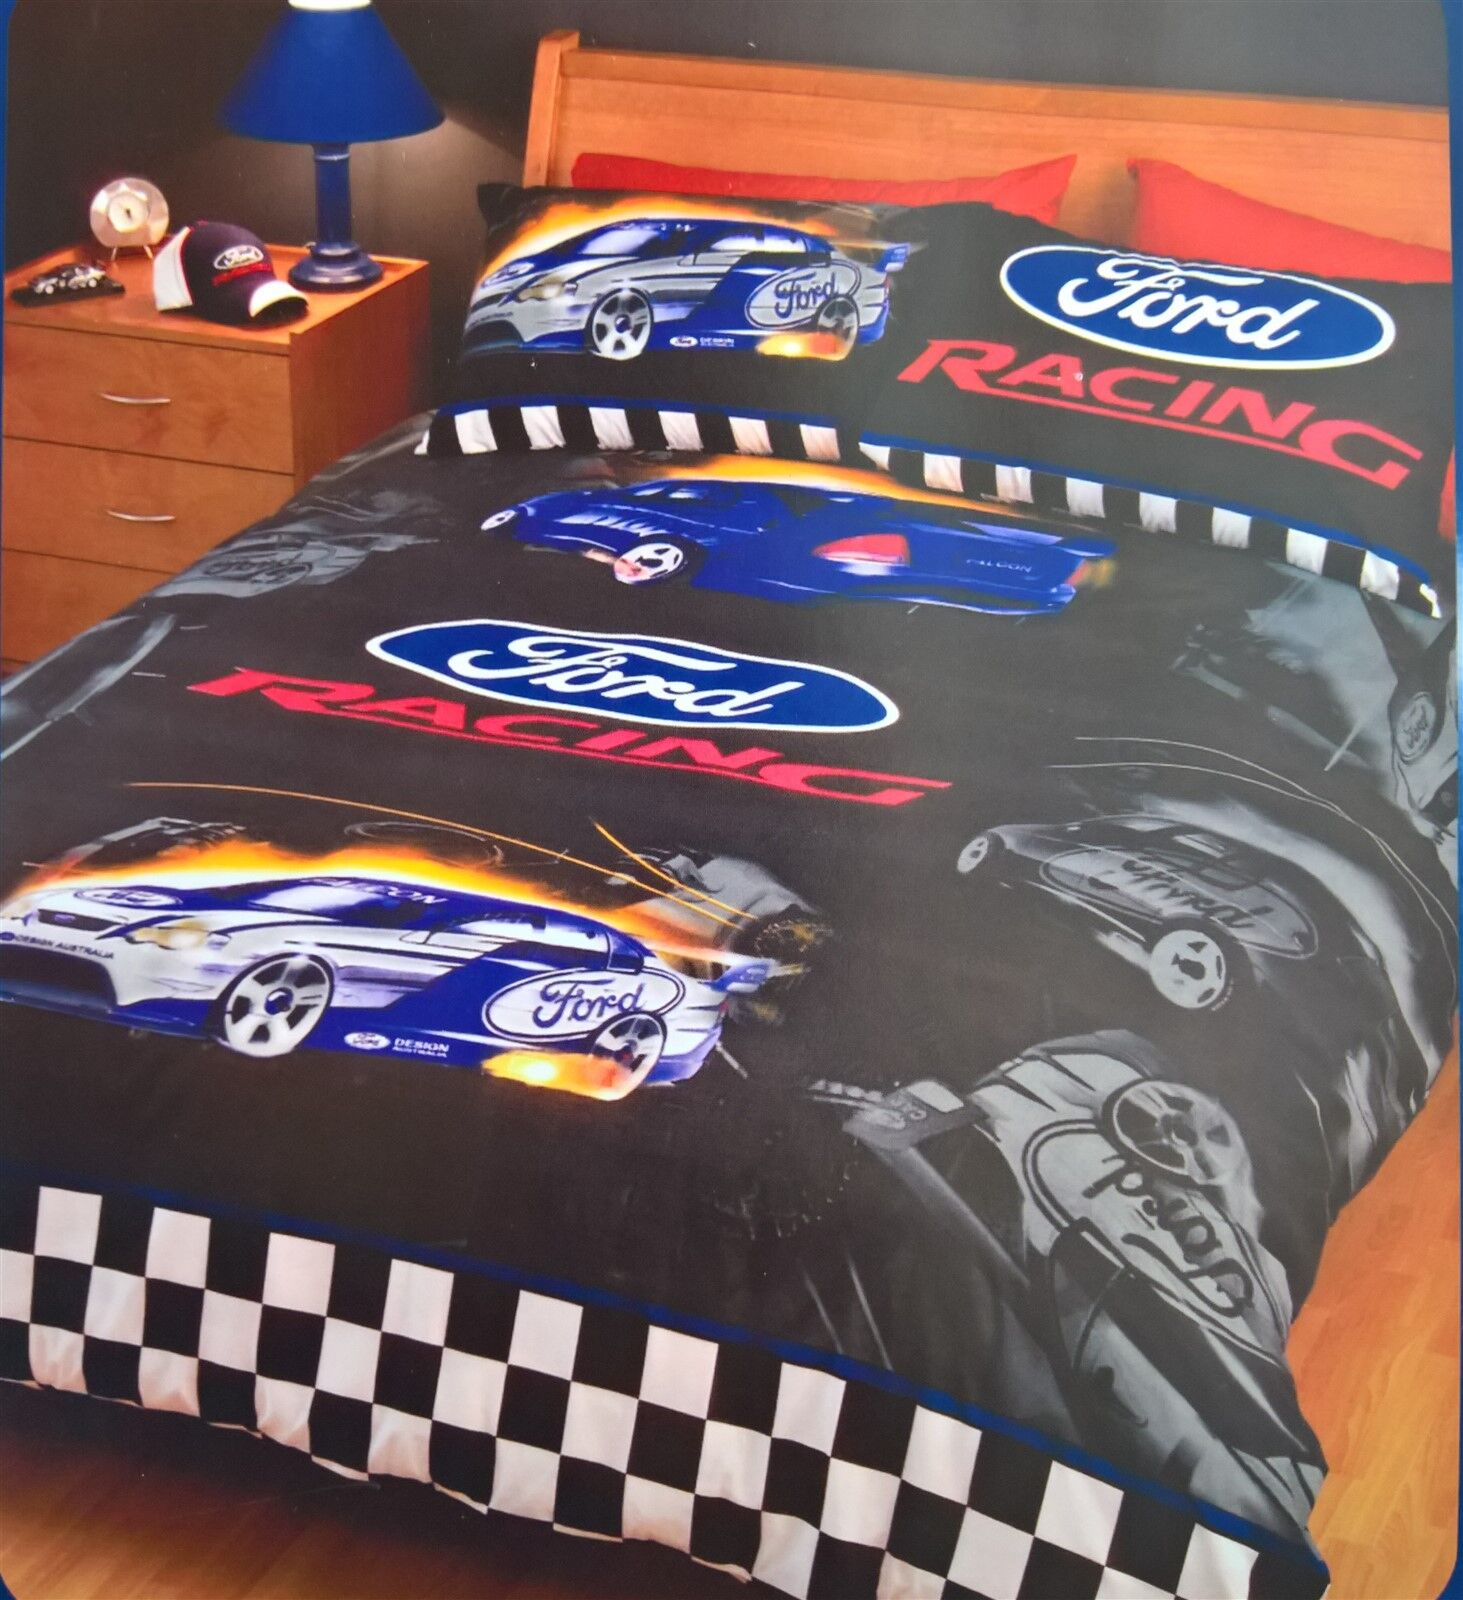 Ford Racing Single Bed Quilt Cover Set Is Brand New In Packet The Pack Contains  Quilt Duvet Cover Cm X Cm  Cm X Cm